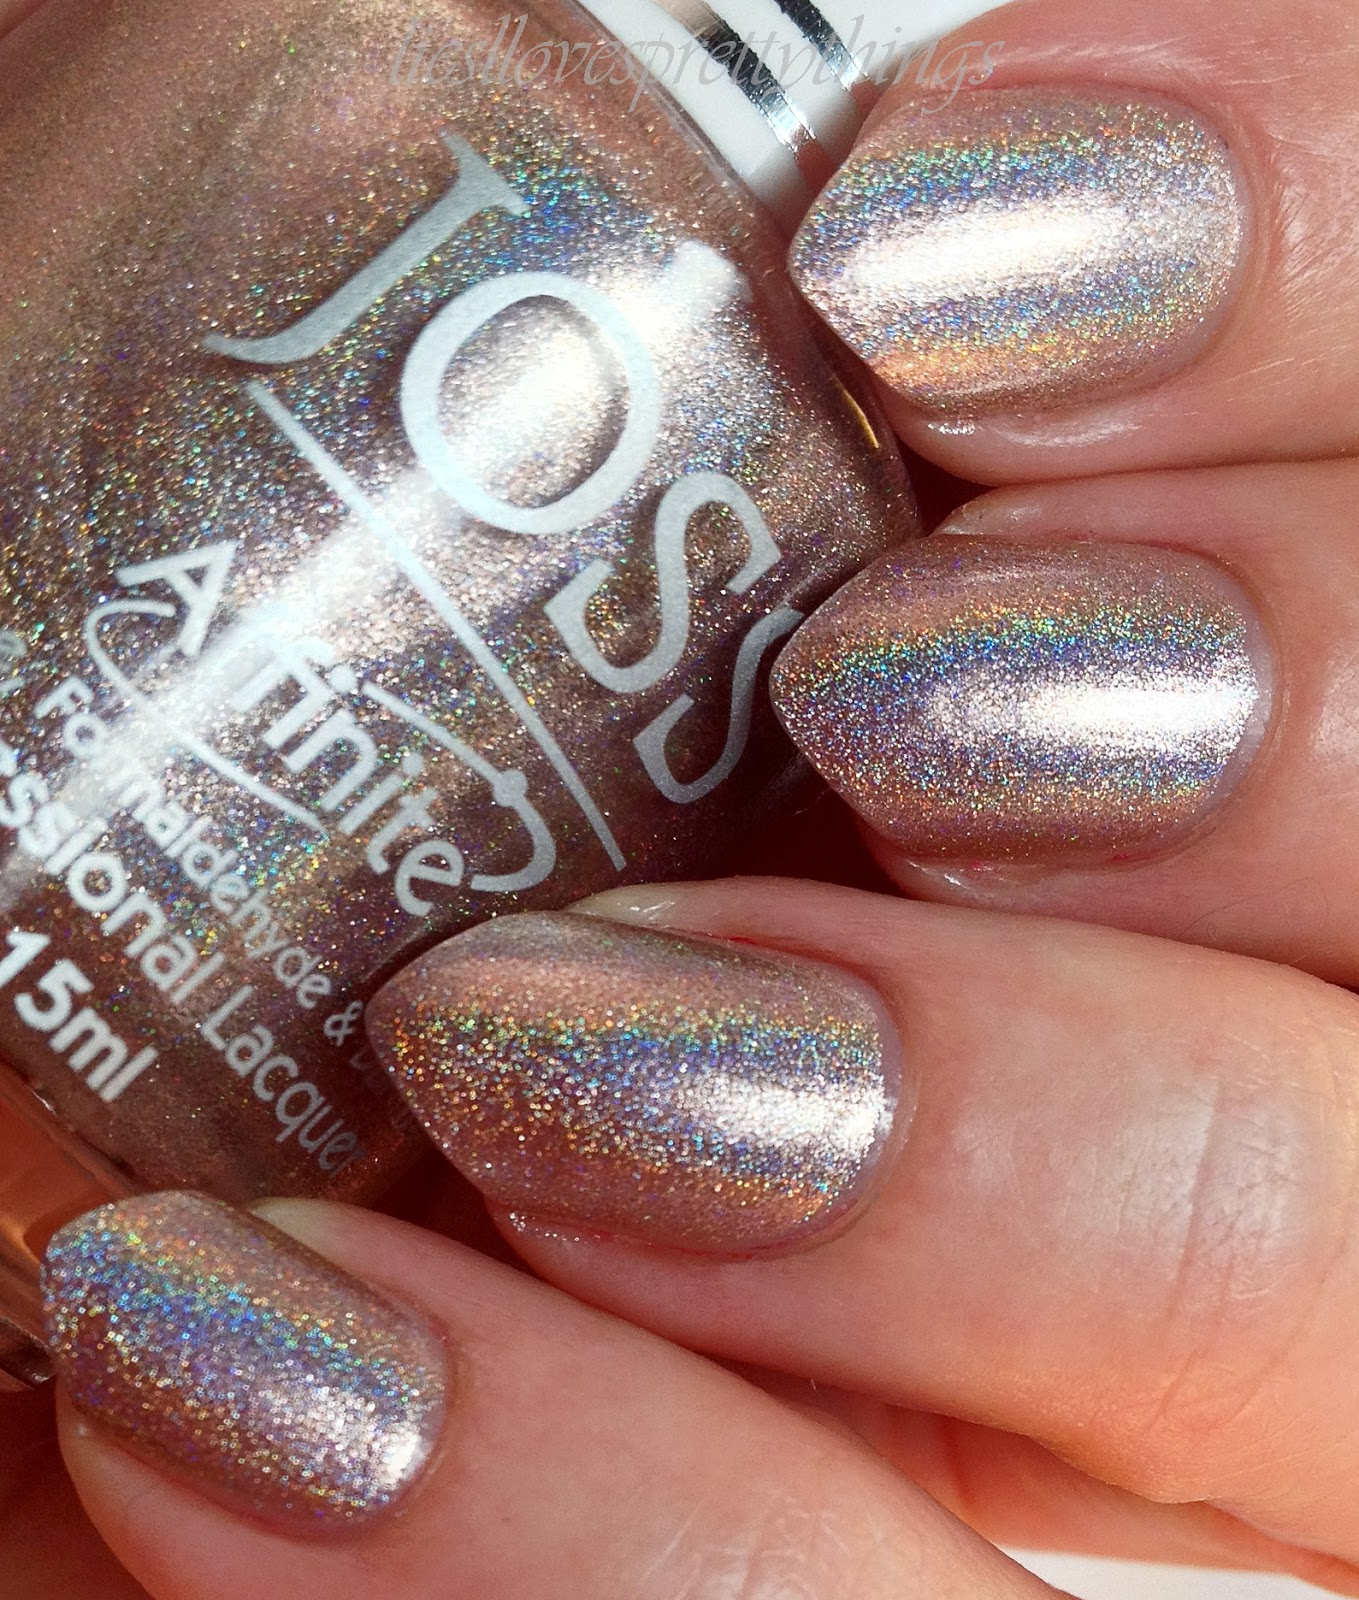 Joss Tantastic Glow swatch and review